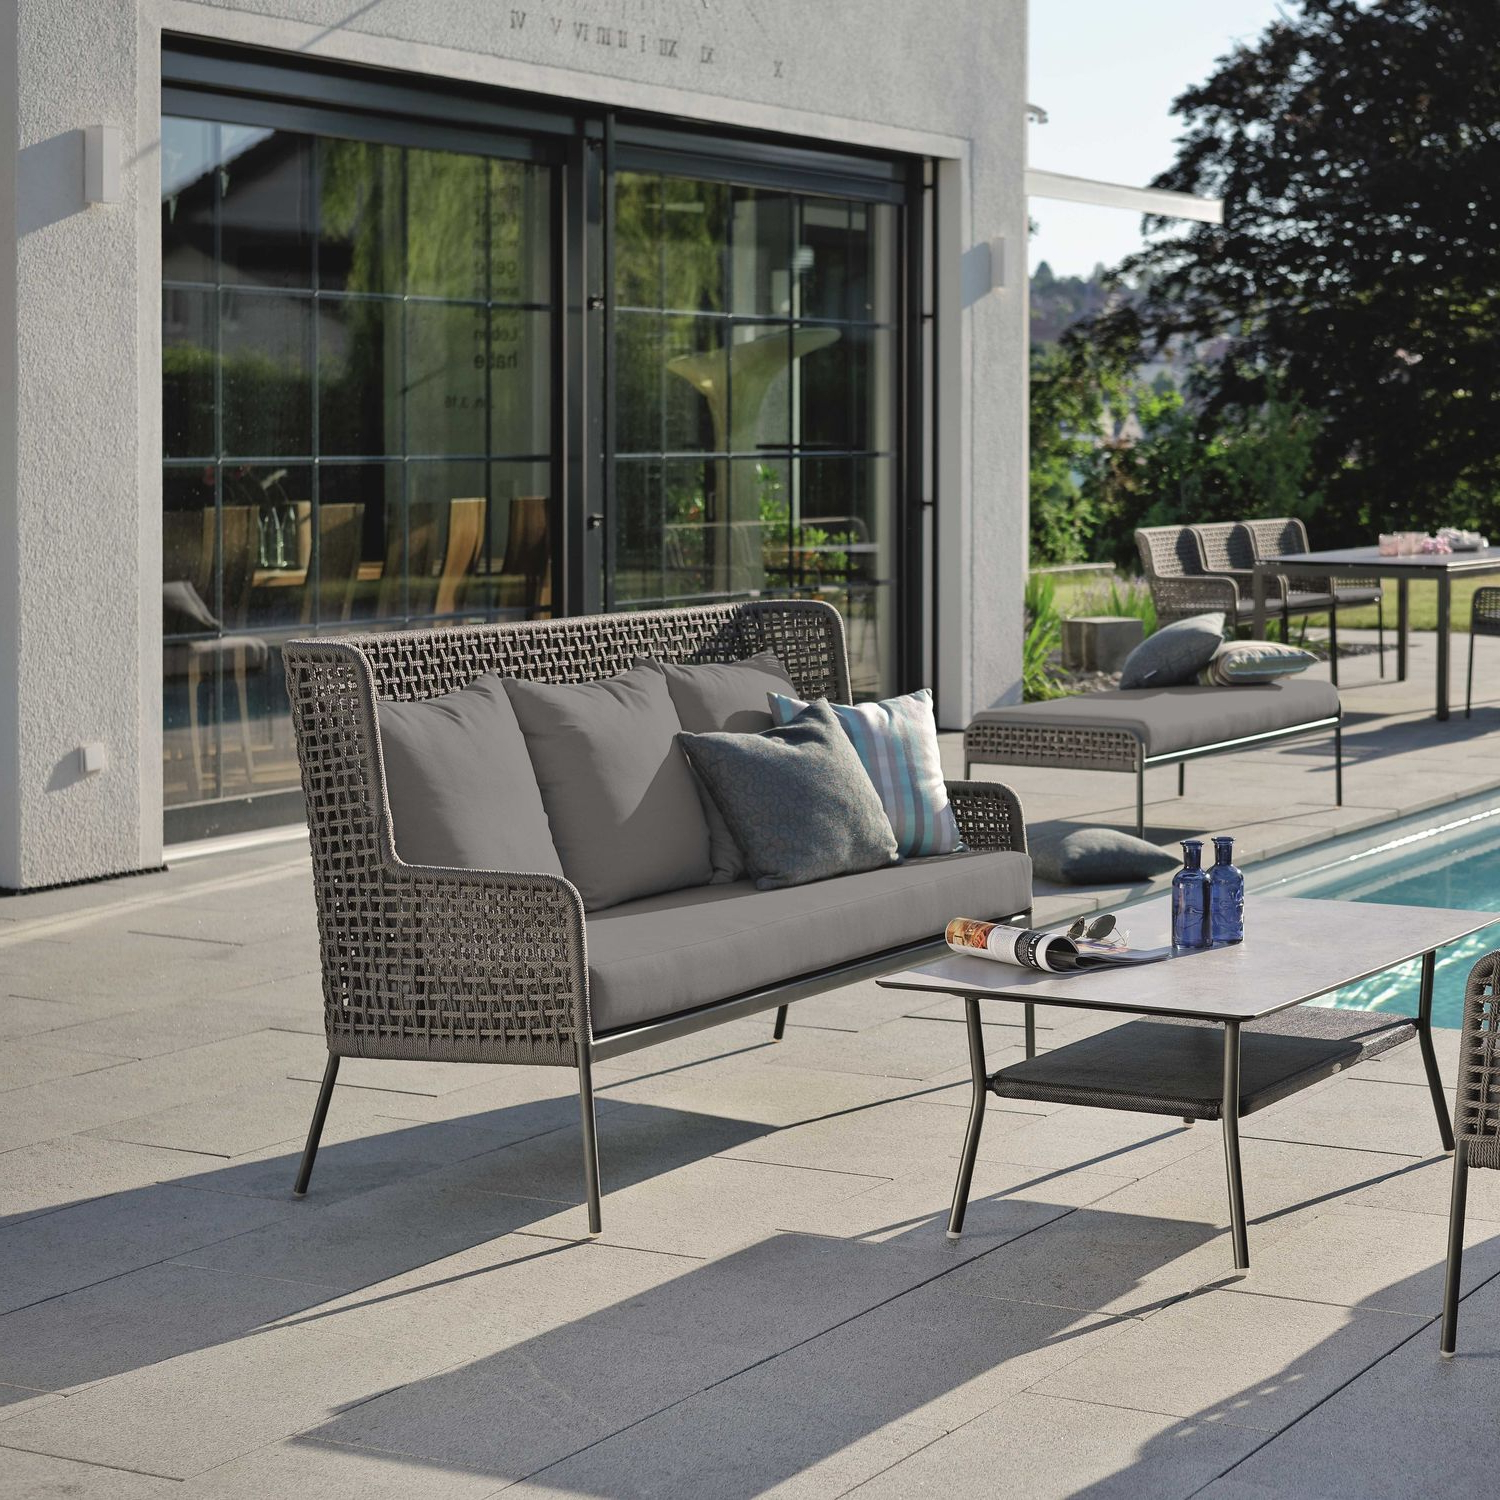 Most Recently Released Contemporary Sofa / Outdoor / Acrylic Fabric / Aluminium Inside Greta Living Patio Sectionals With Cushions (View 20 of 20)